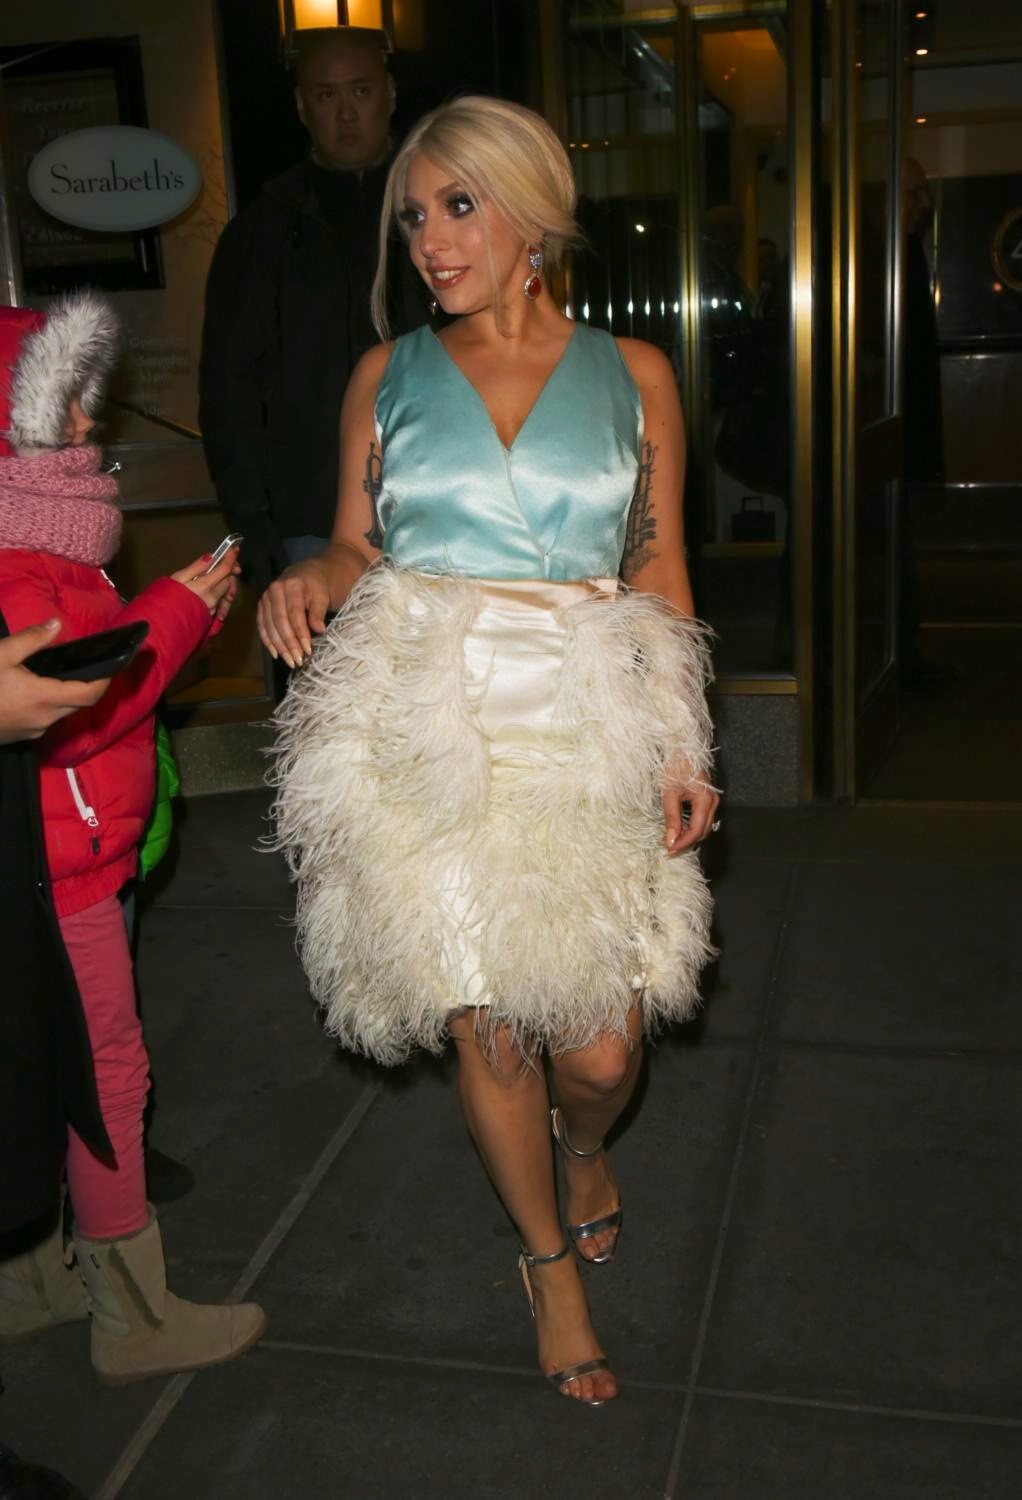 Singer: Lady Gaga - In New York And poses For pictures With Fans In A Ruffled Feather